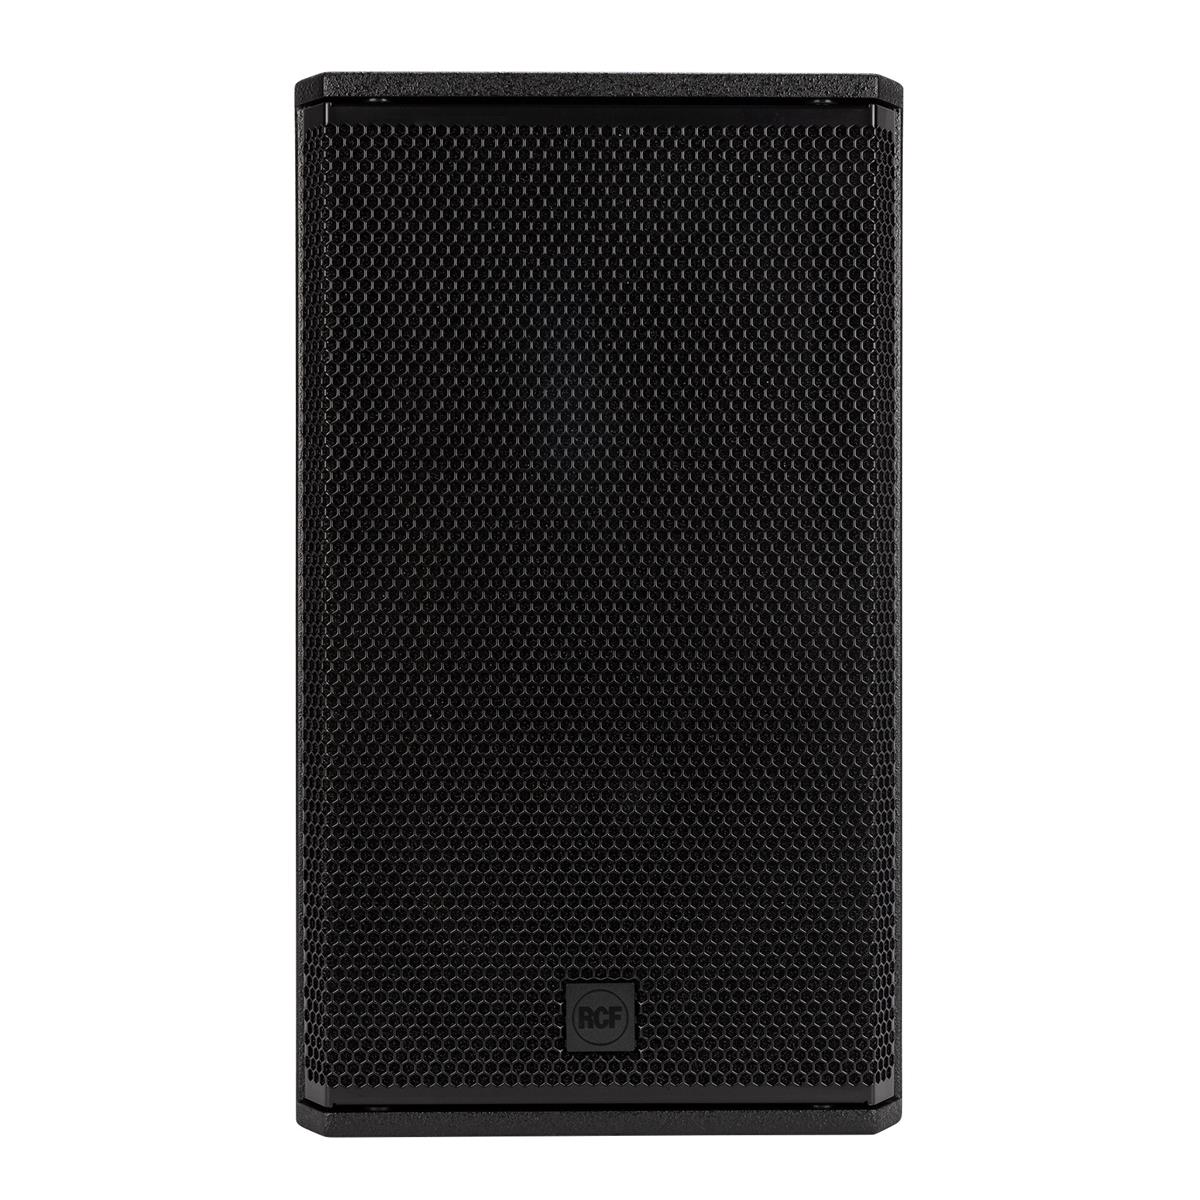 RCF COMPACT M 12 Two-way passive speaker 12in+1in 300W